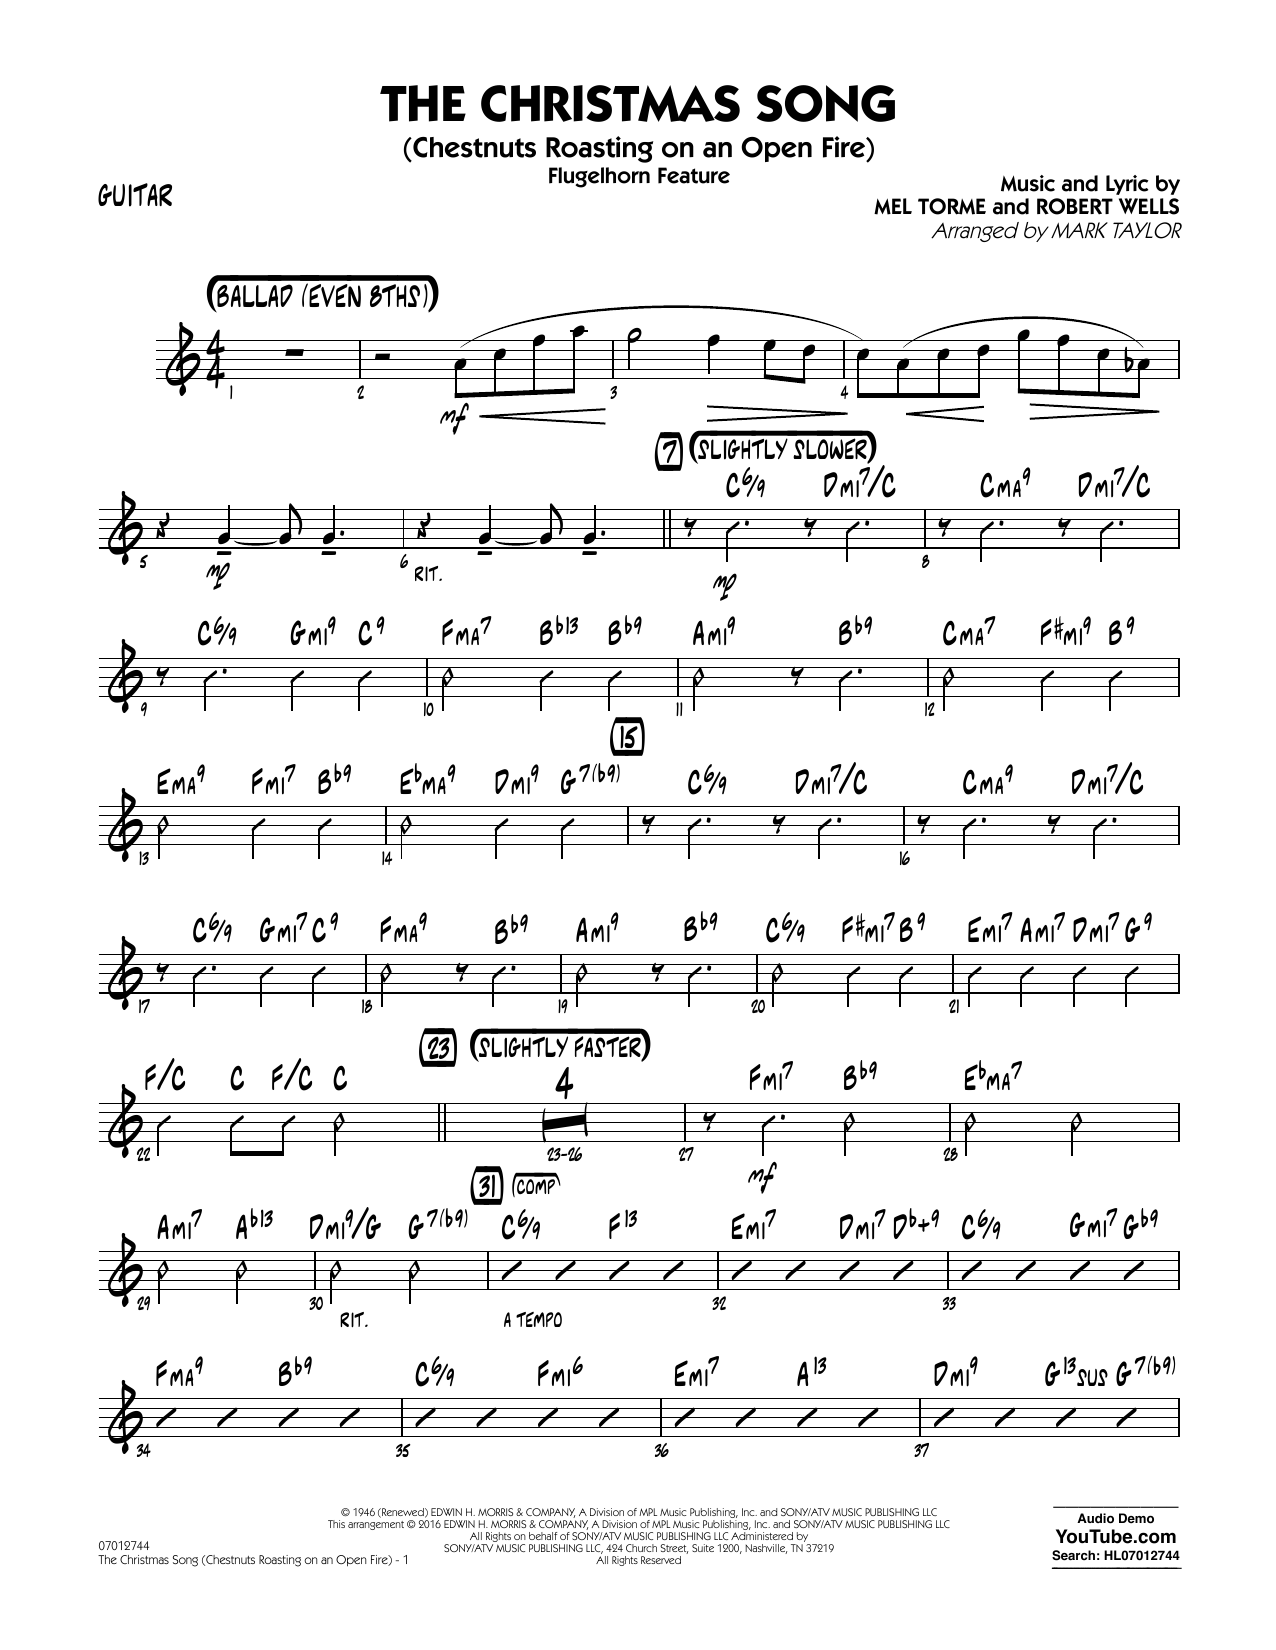 The Christmas Song (Chestnuts Roasting on an Open Fire) - Guitar (Jazz Ensemble)